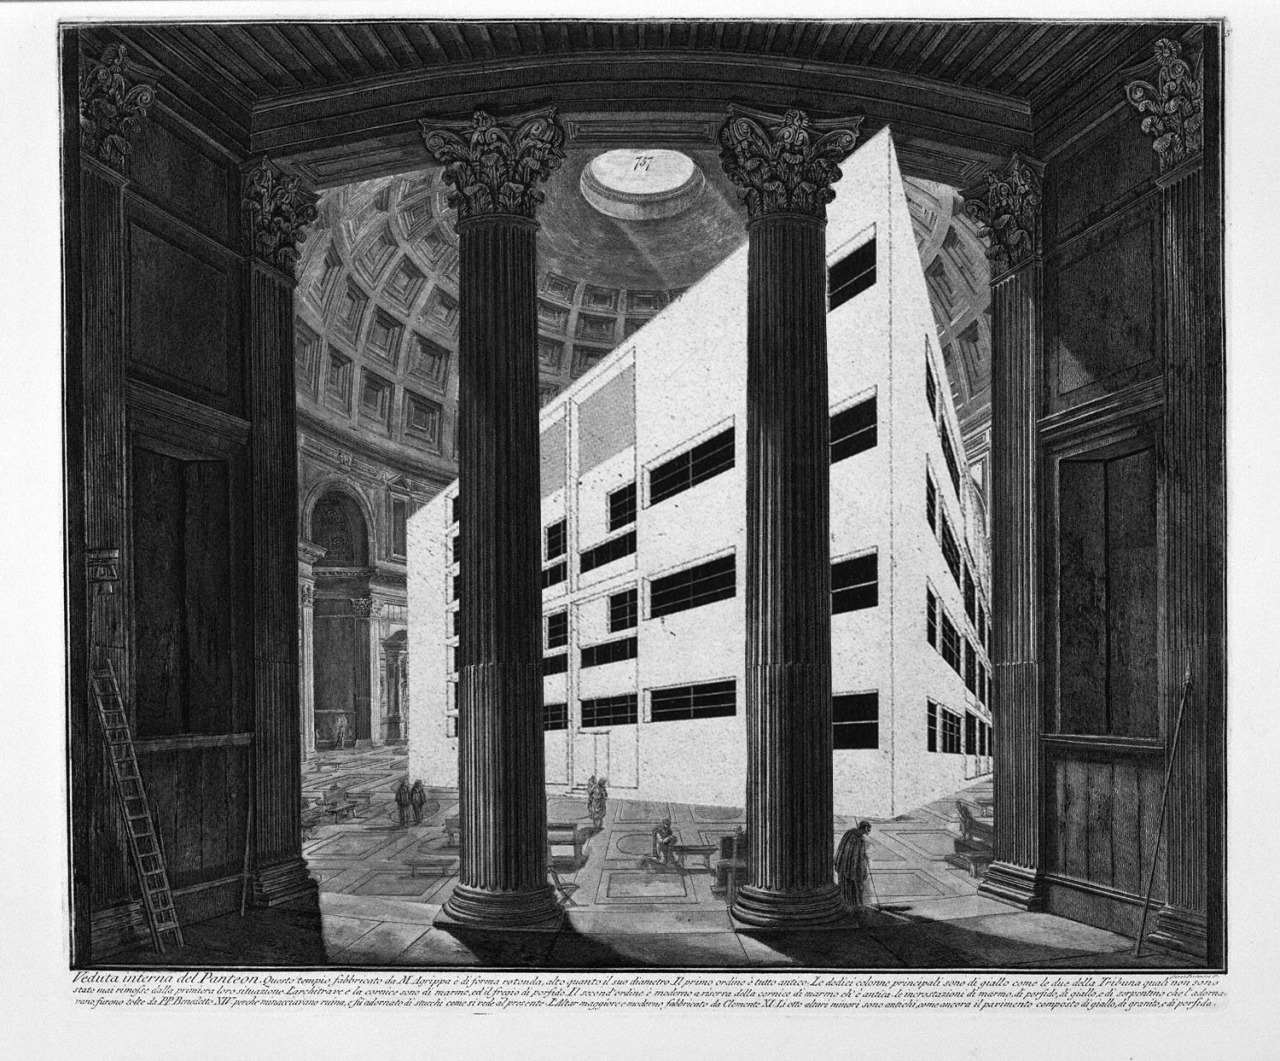 TERRAGNI IN PIRANESI